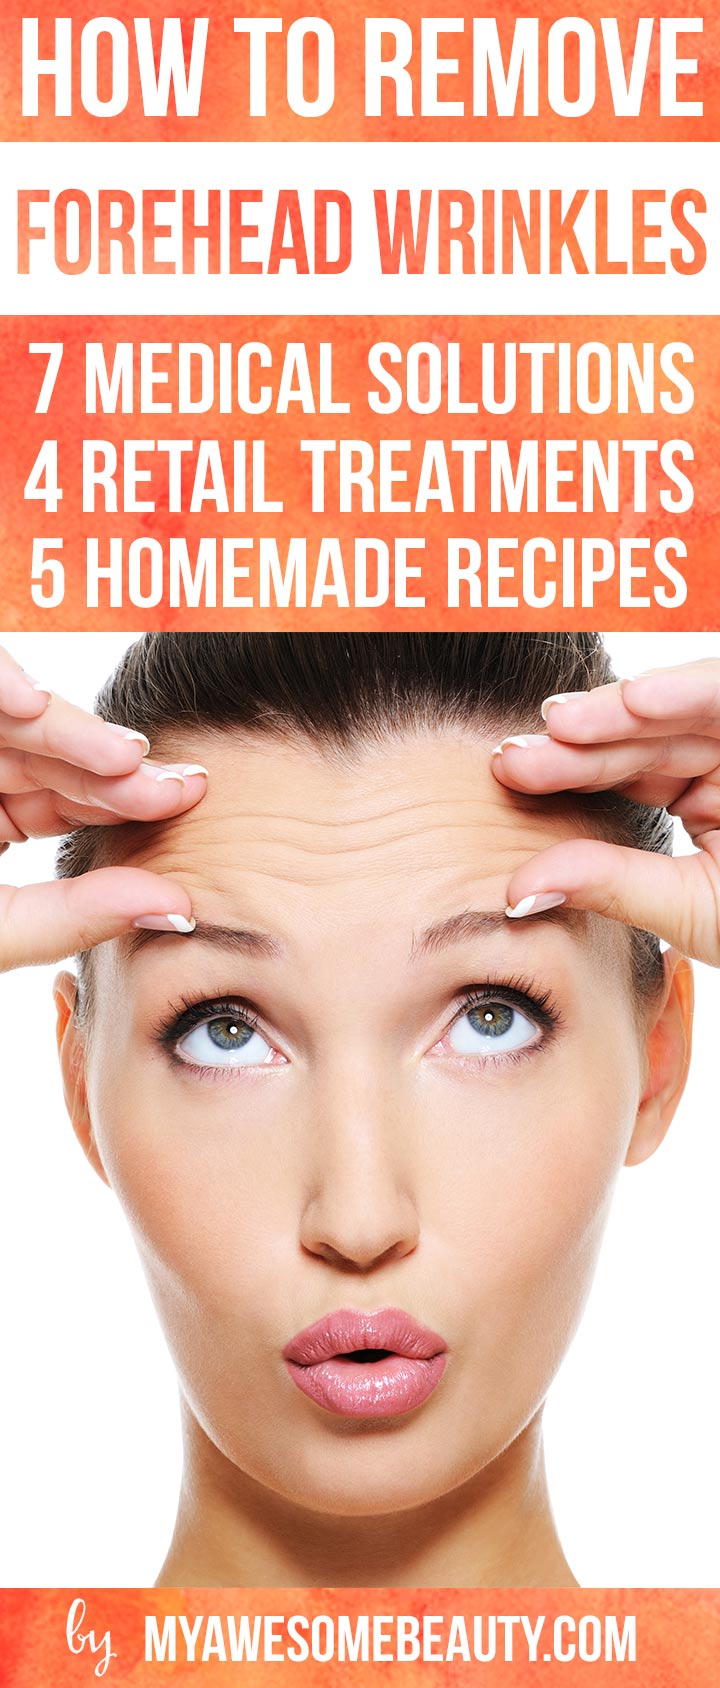 Best Way To Get Rid Of Forehead Lines Naturally